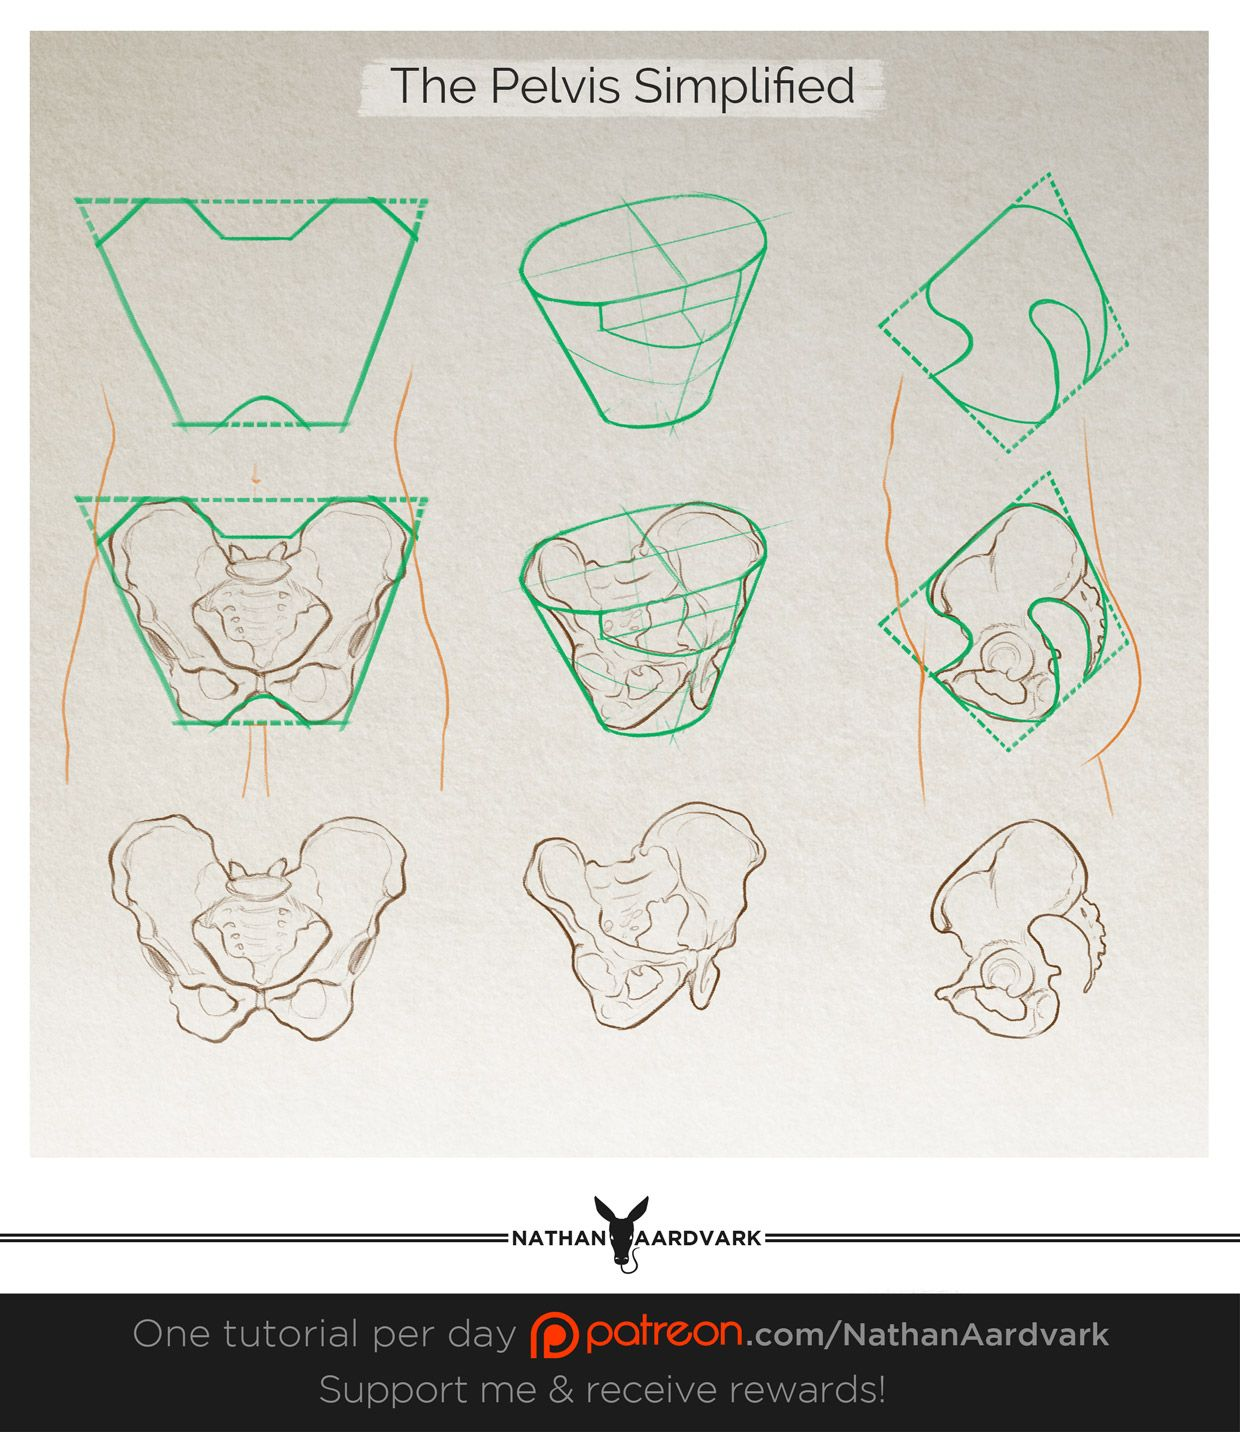 image freeuse library Pelvis drawing. Tutorial the simplified art